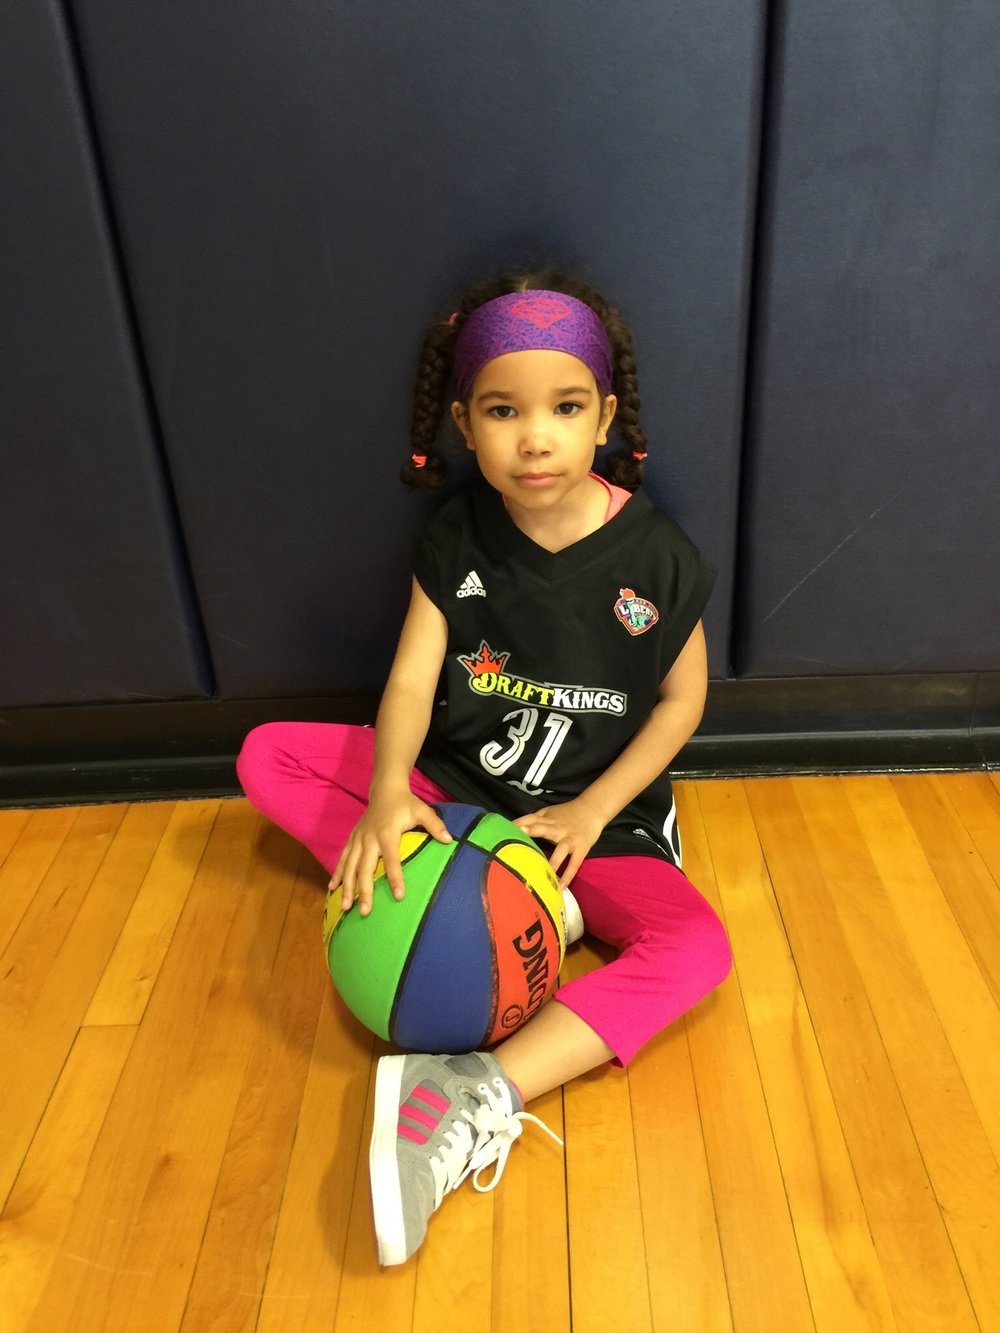 My daughter wore her Skylar Diggins headband and her Tina Charles jersey.